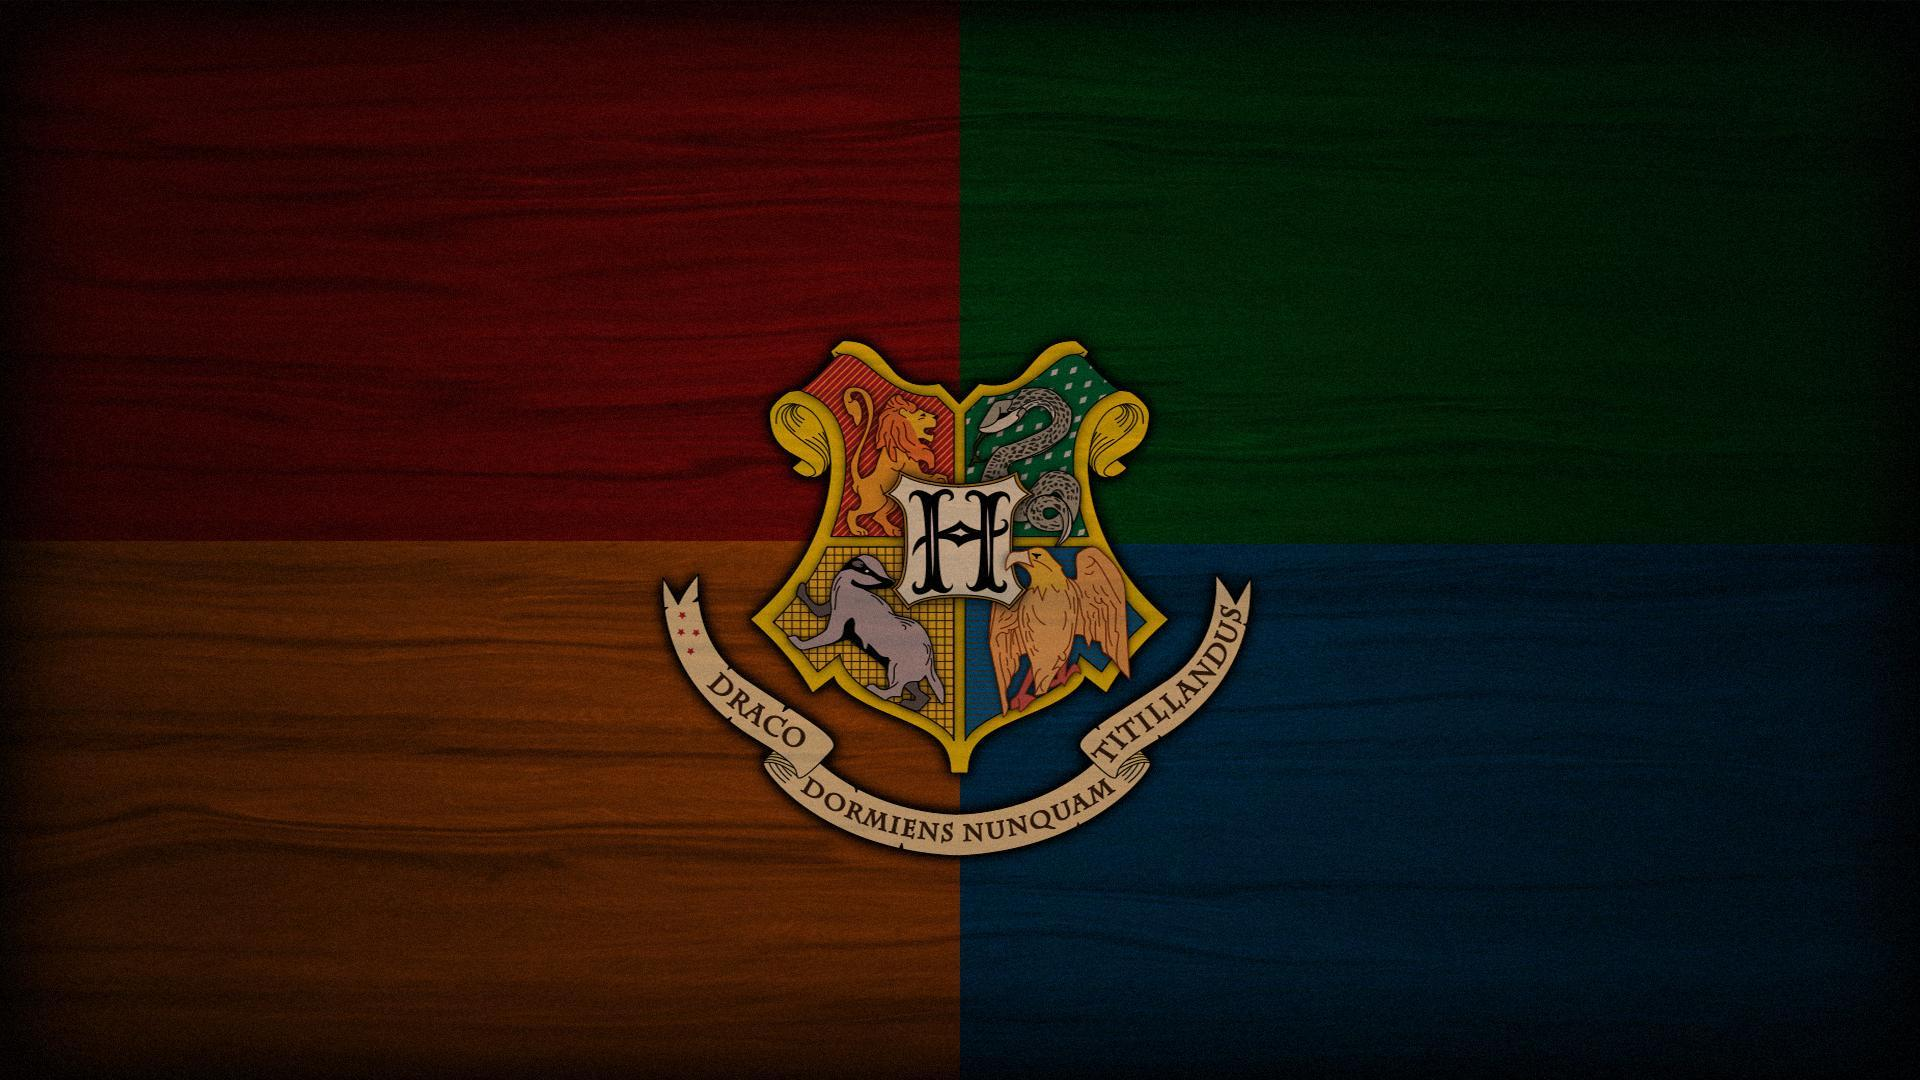 Harry Potter Slytherin Wallpapers